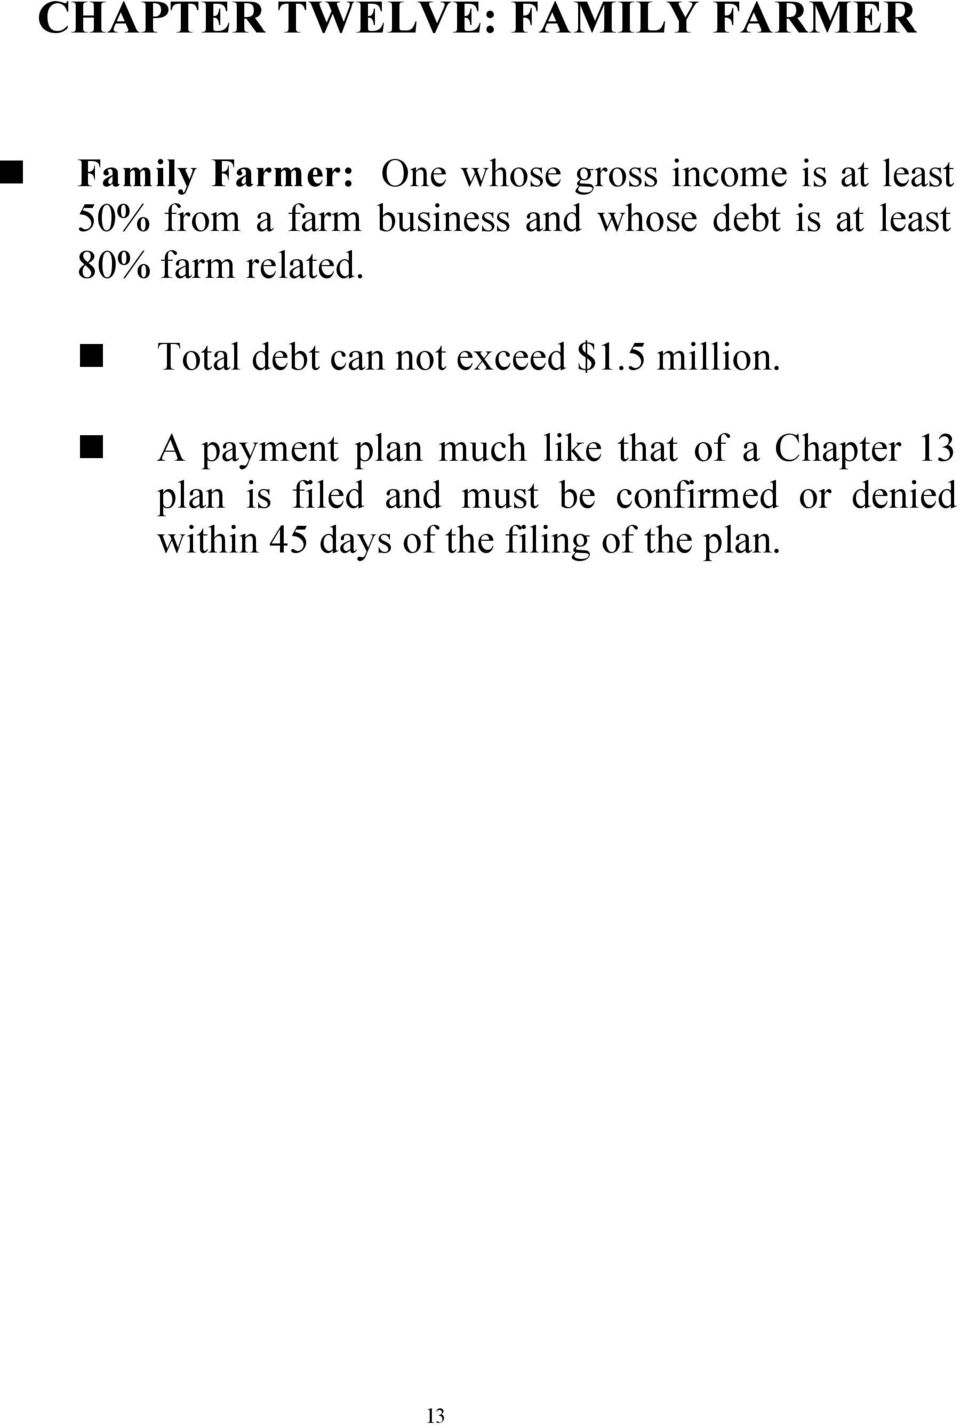 Total debt can not exceed $1.5 million.